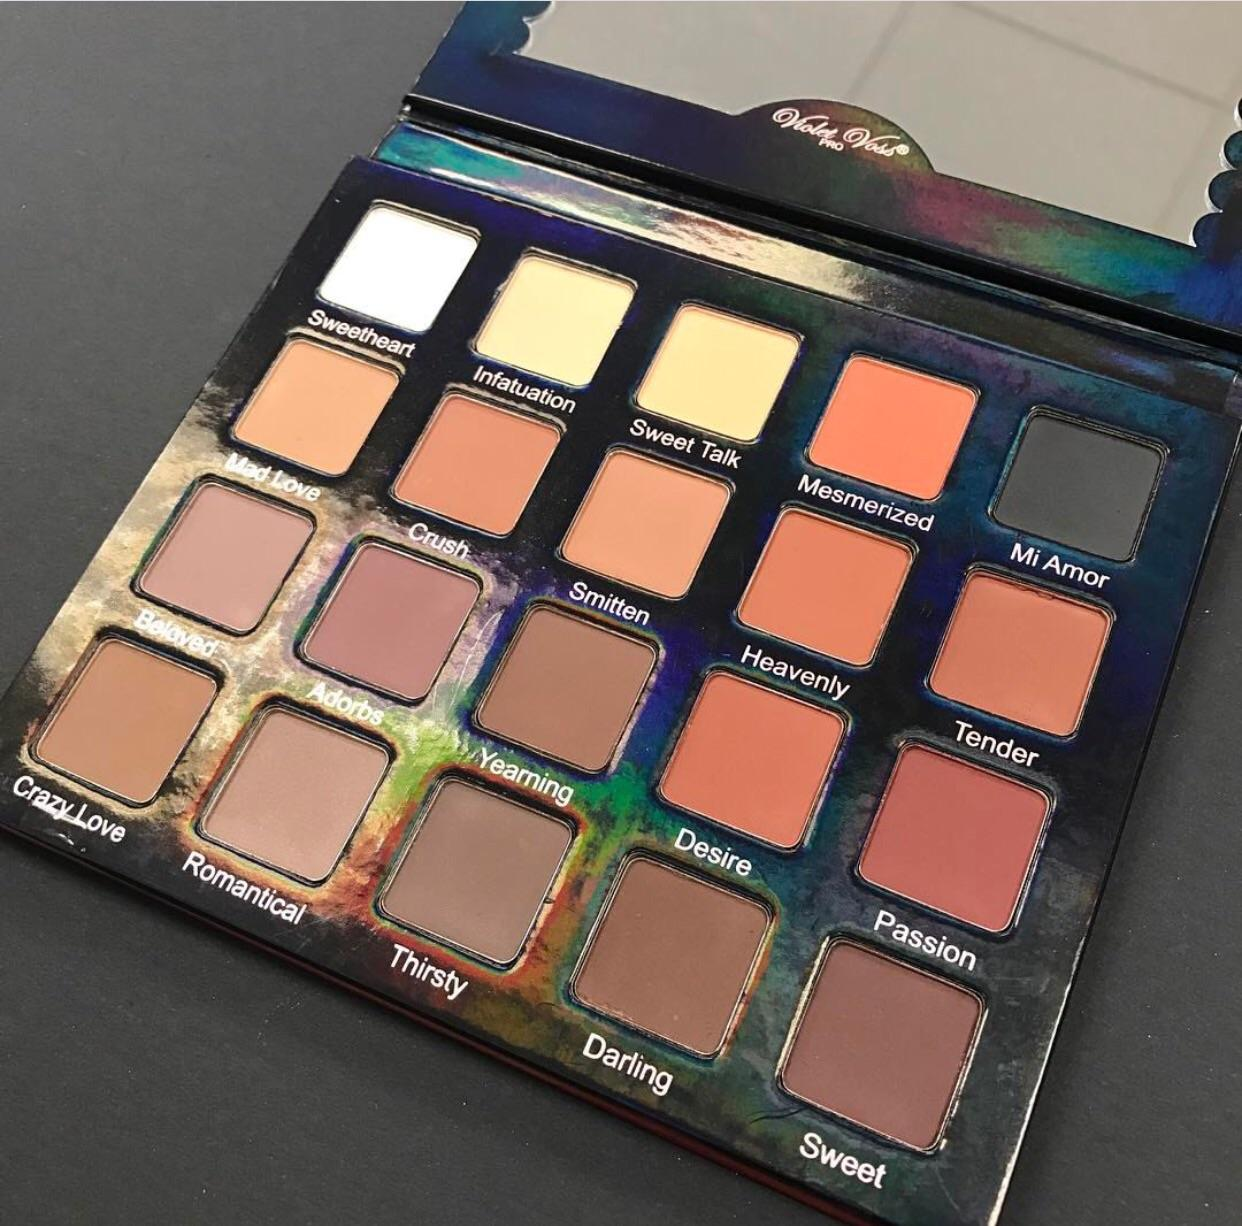 Matte About You Pro Eyeshadow Palette by Violet Voss Cosmetics #20